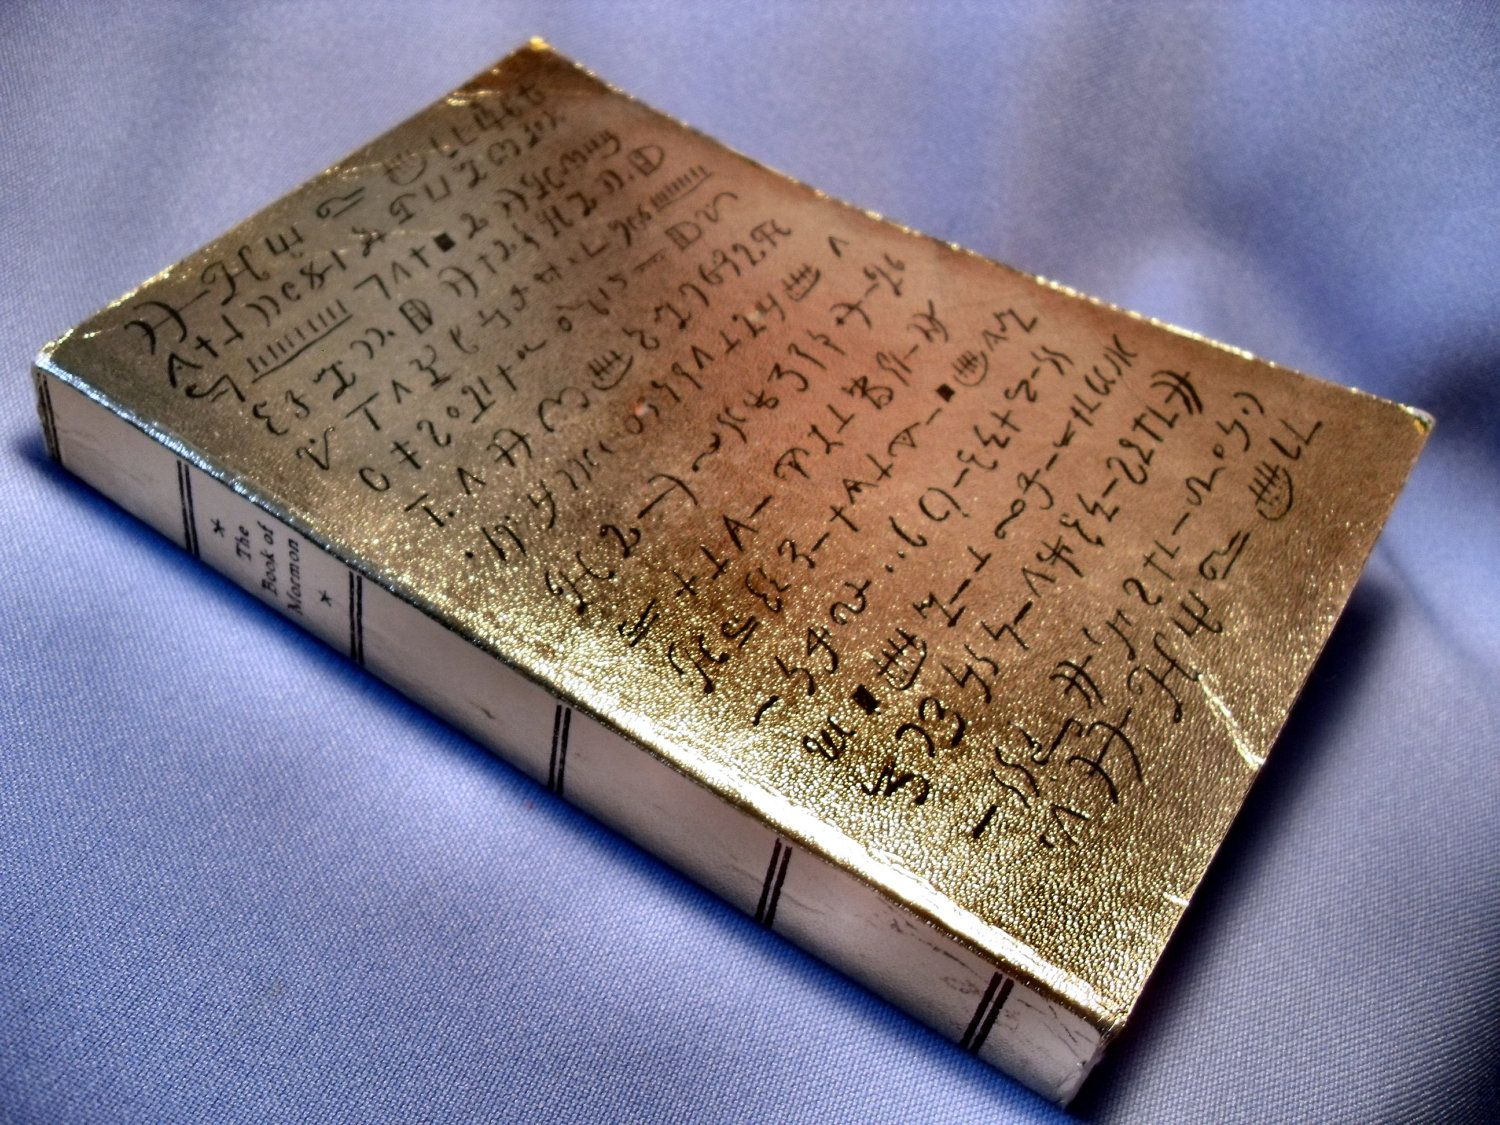 1977 Rare Gold Plates Edition Book Of Mormon Lds I Used To Have One Of These Scriptures Book Of Mormon Scripture Lds Art